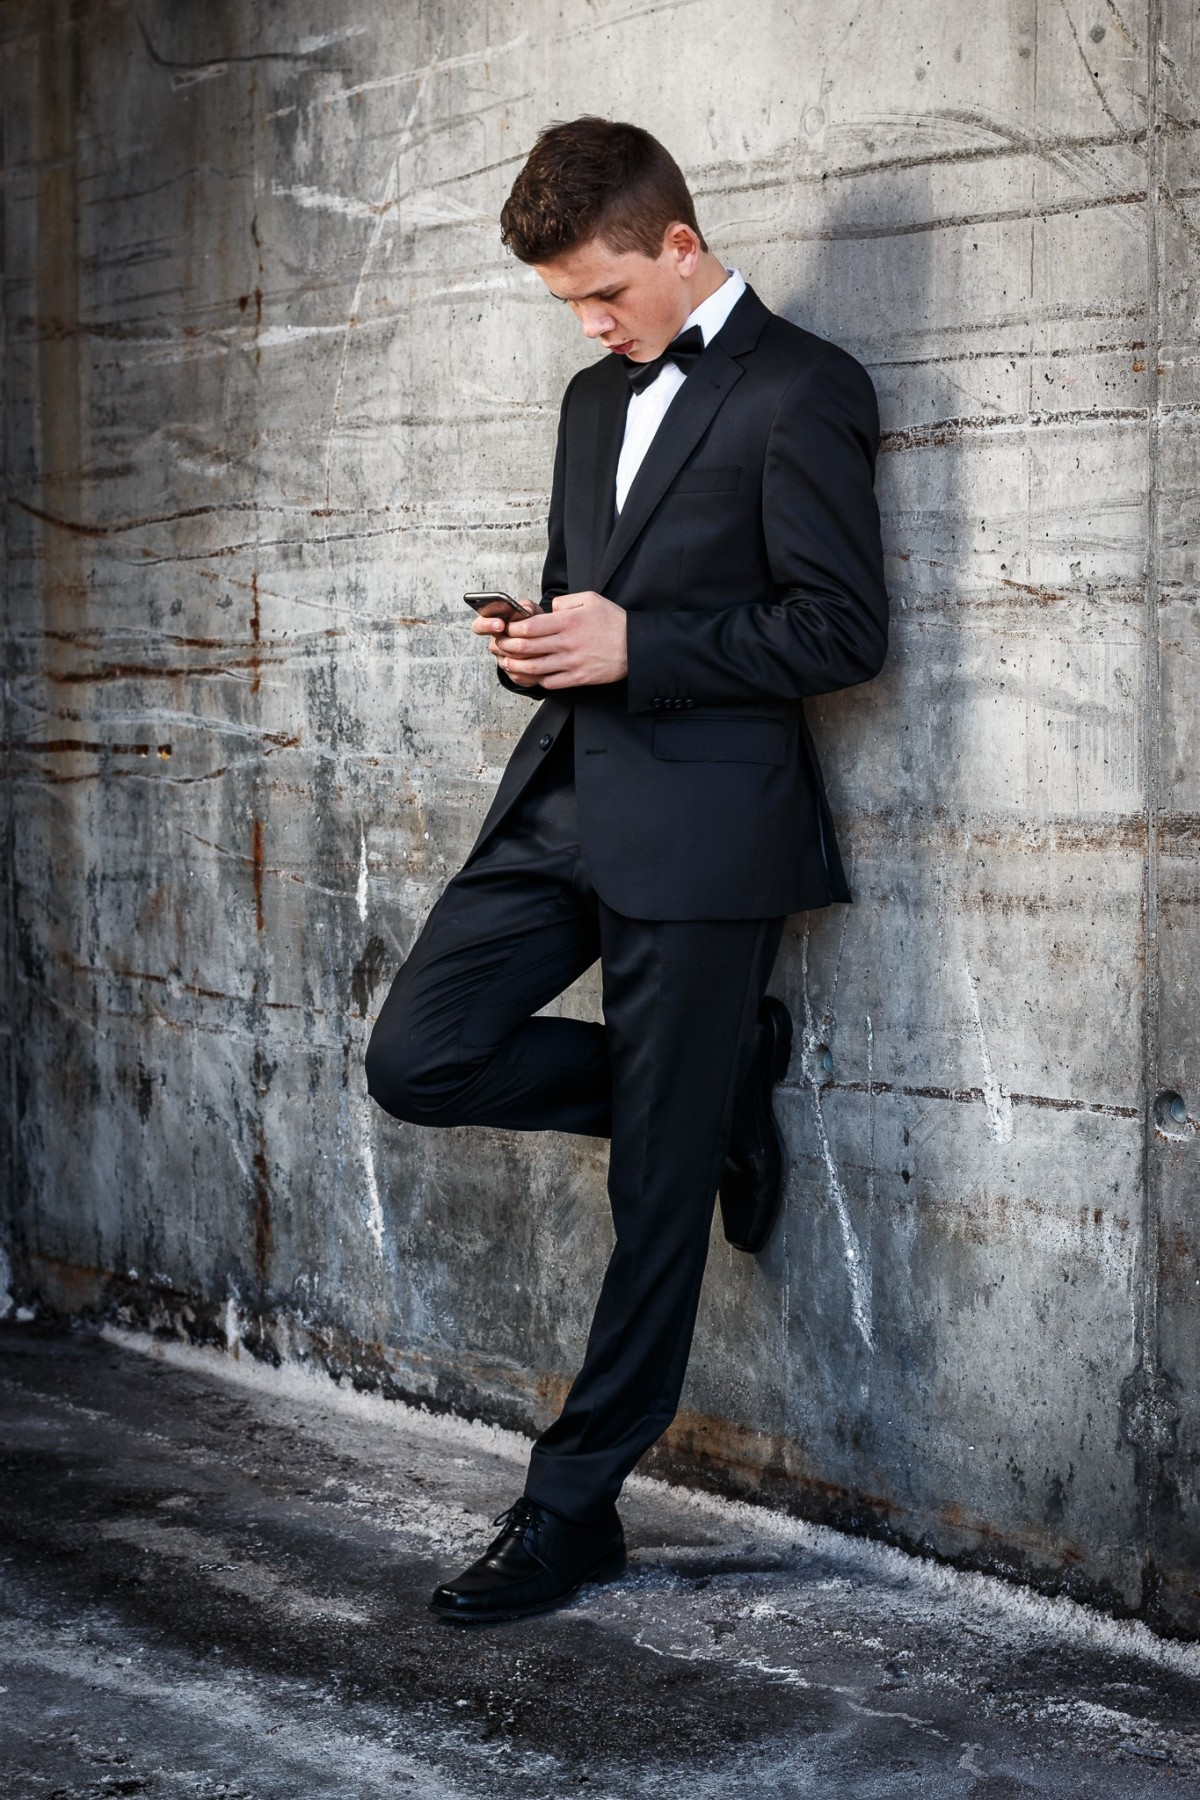 Free Images Man Person Suit Black And White Male